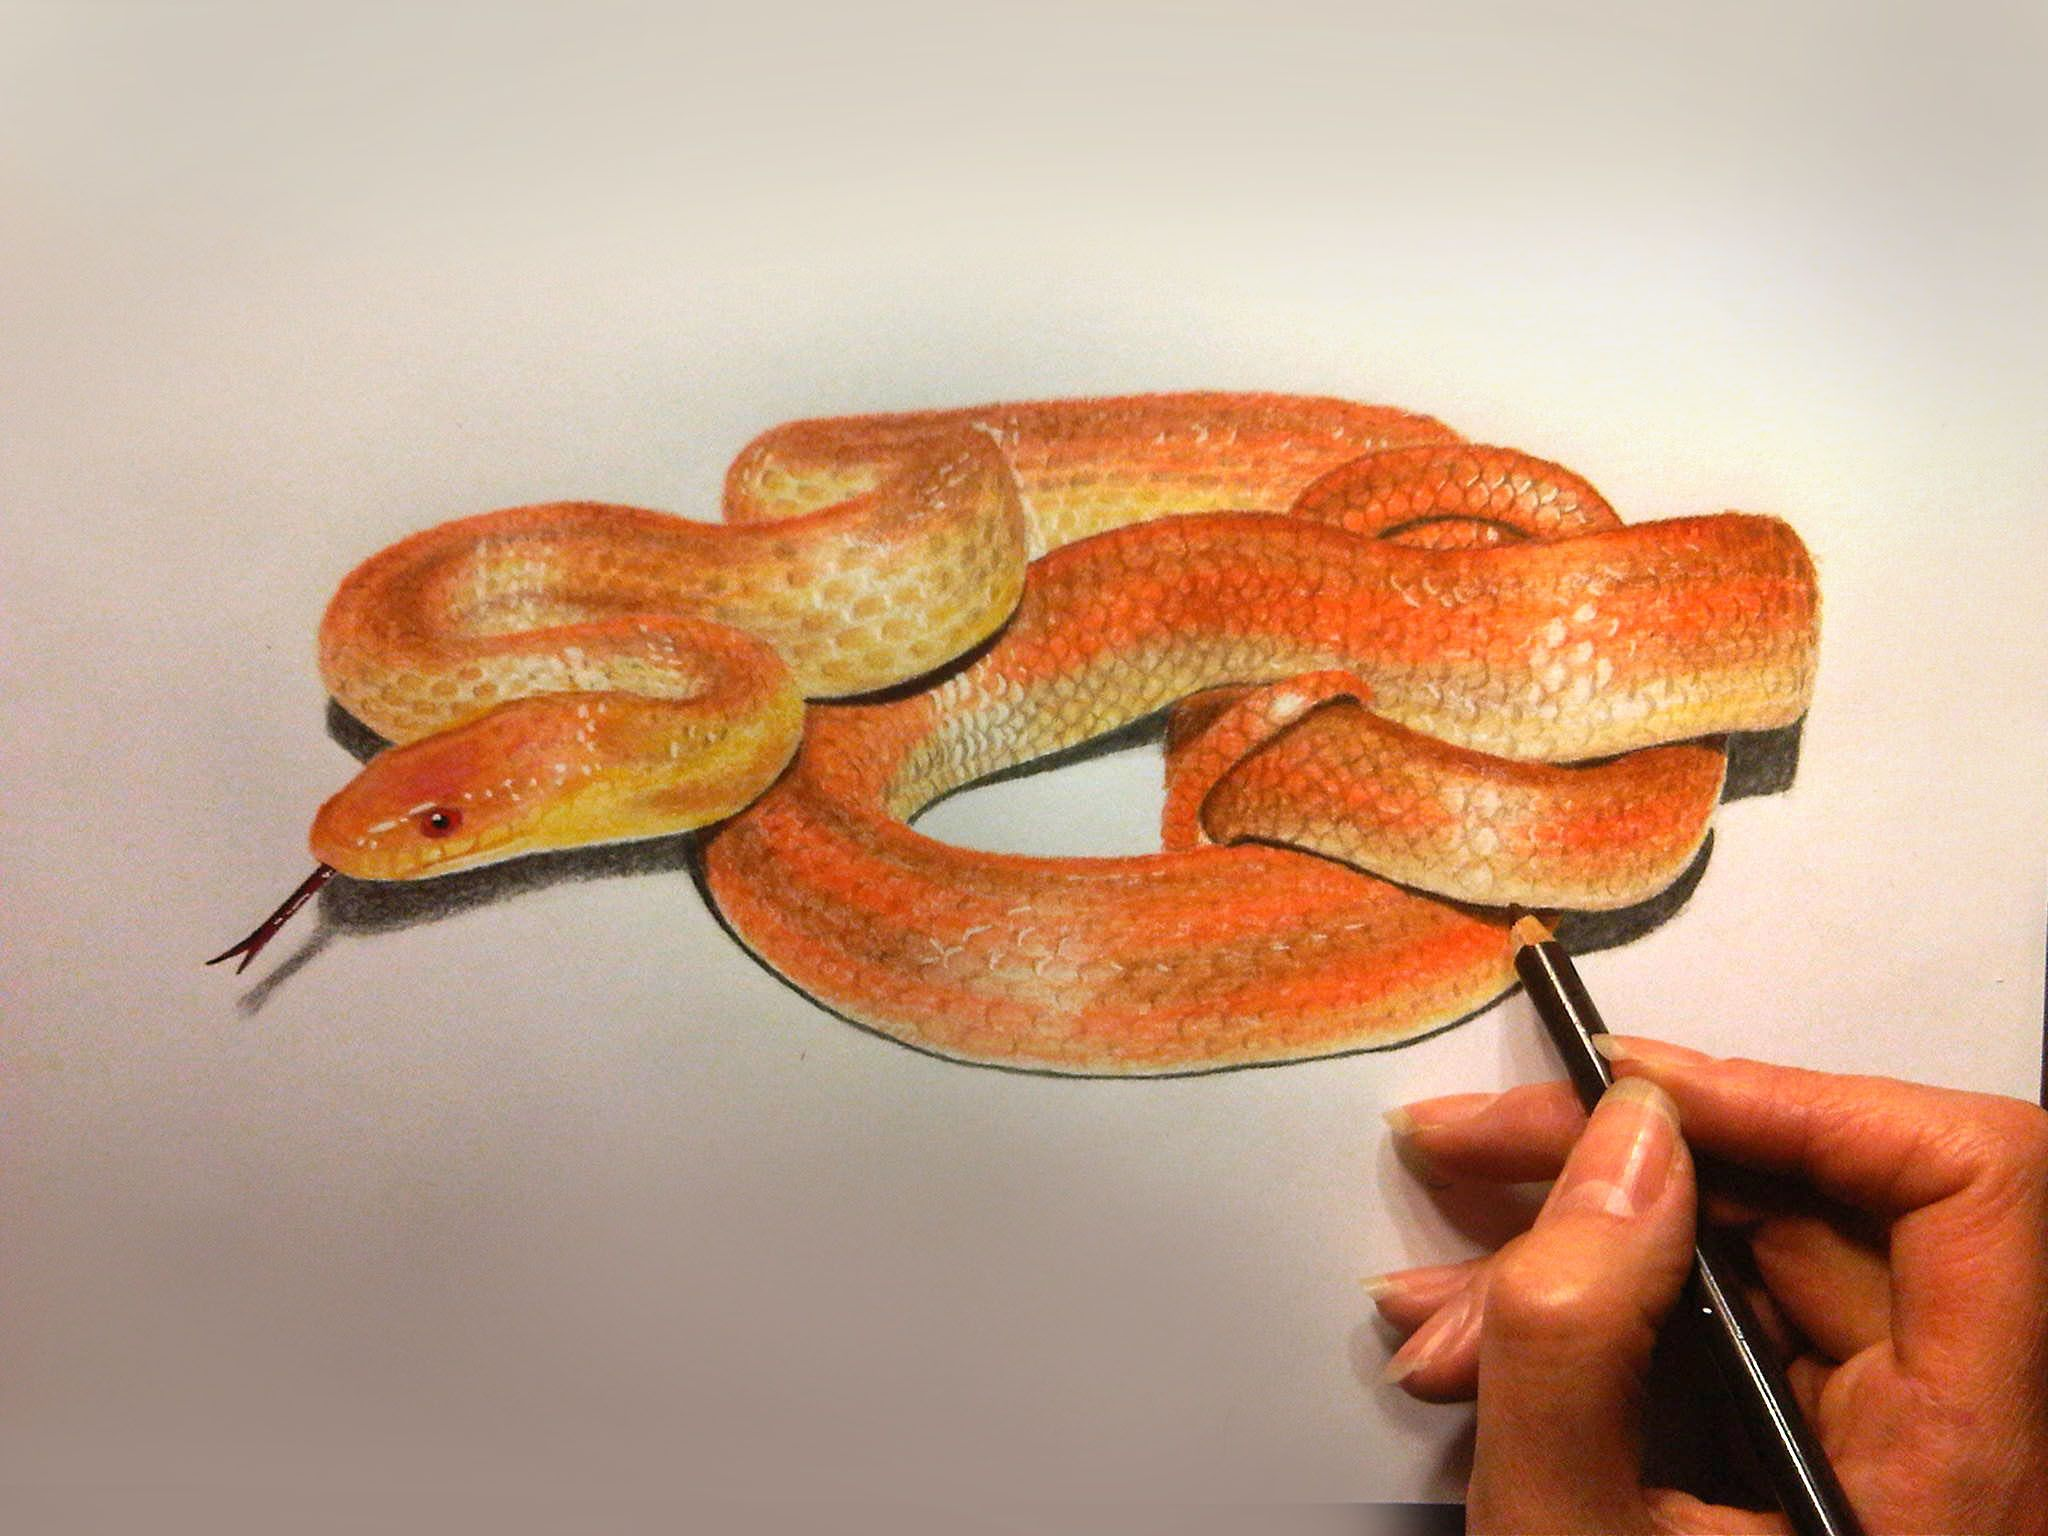 How To Draw A Snake With Colored Pencils 3d Malerei Malerei